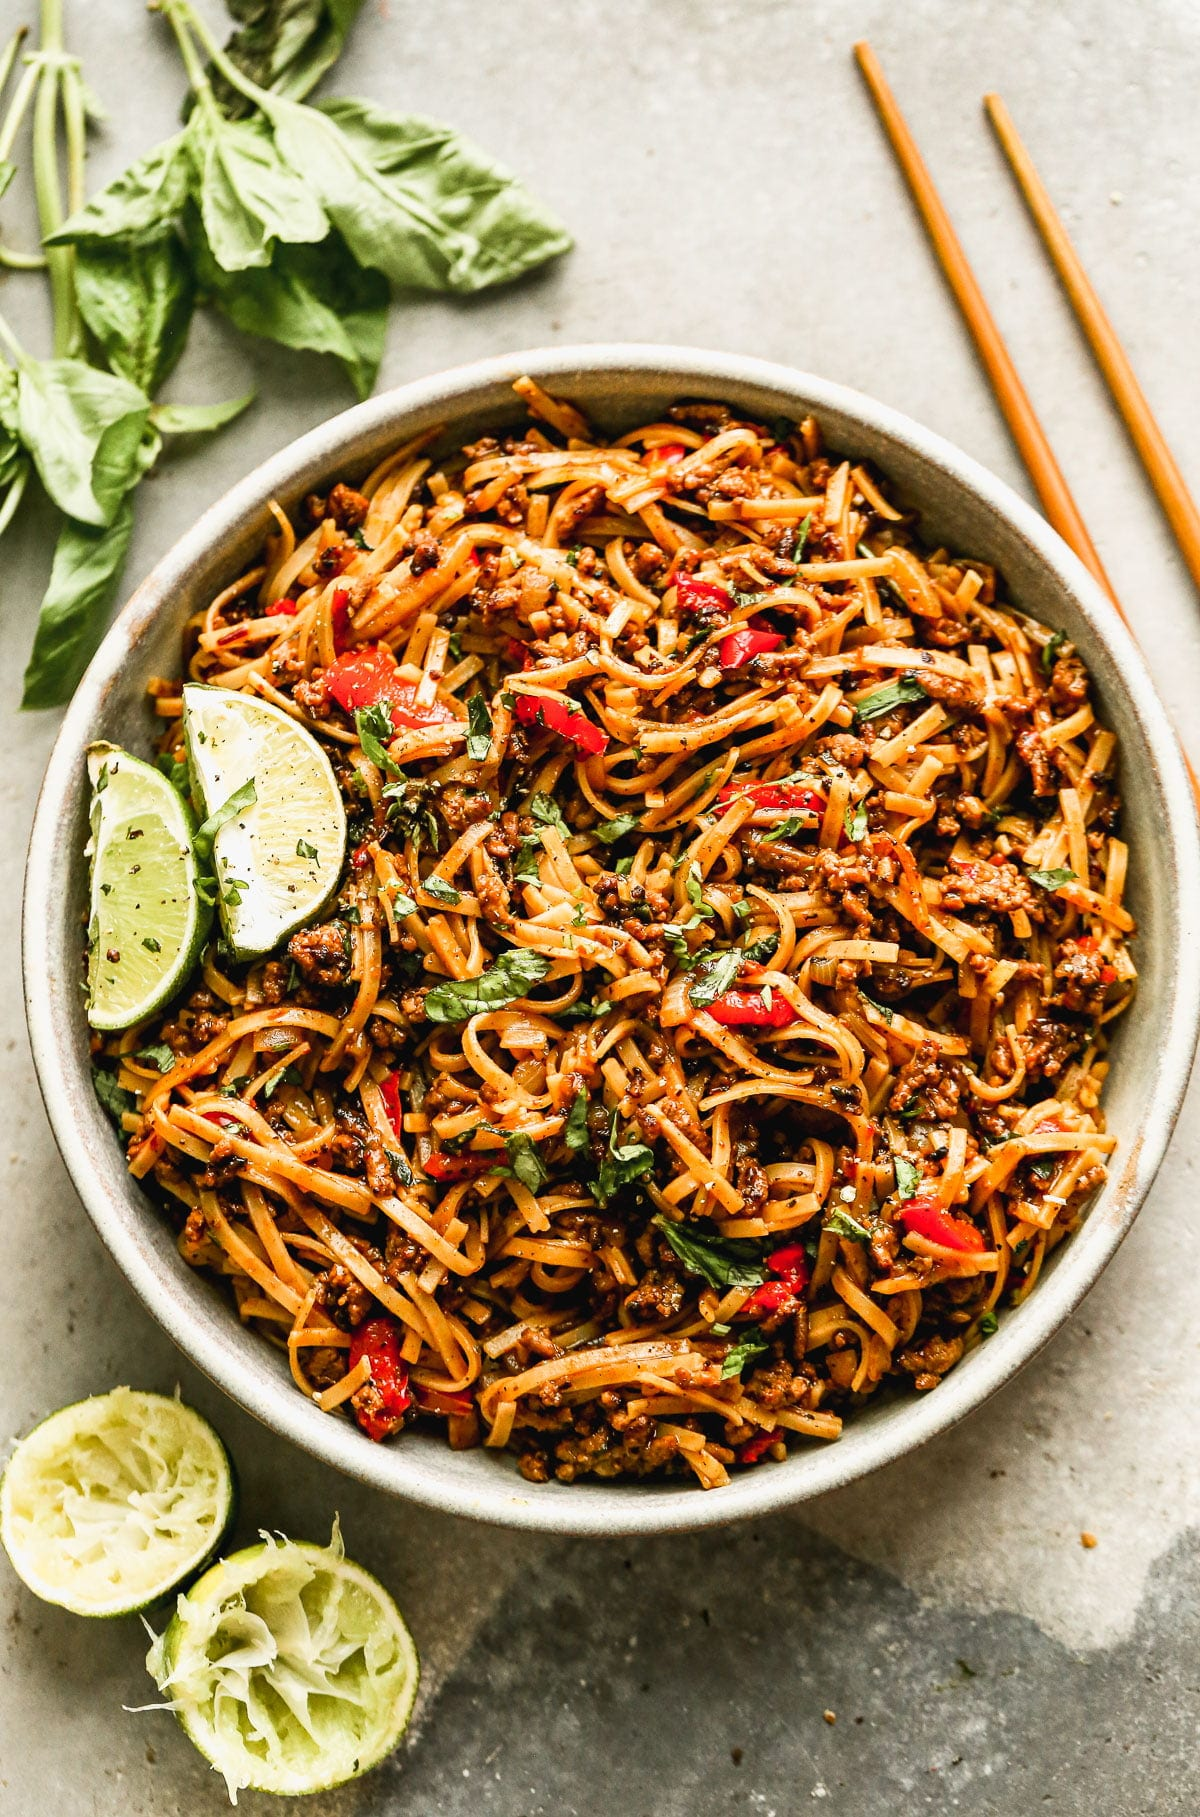 Brimming with saucy ground beef, chewy rice noodles, and plenty of veggies, our Spicy Beef Noodles are the perfect way to get dinner on the table fast and without complaint. These guys are equal parts sweet, spicy, and delicious and we can't get enough of them. Perfect way to use up leftover ground beef and veggies.